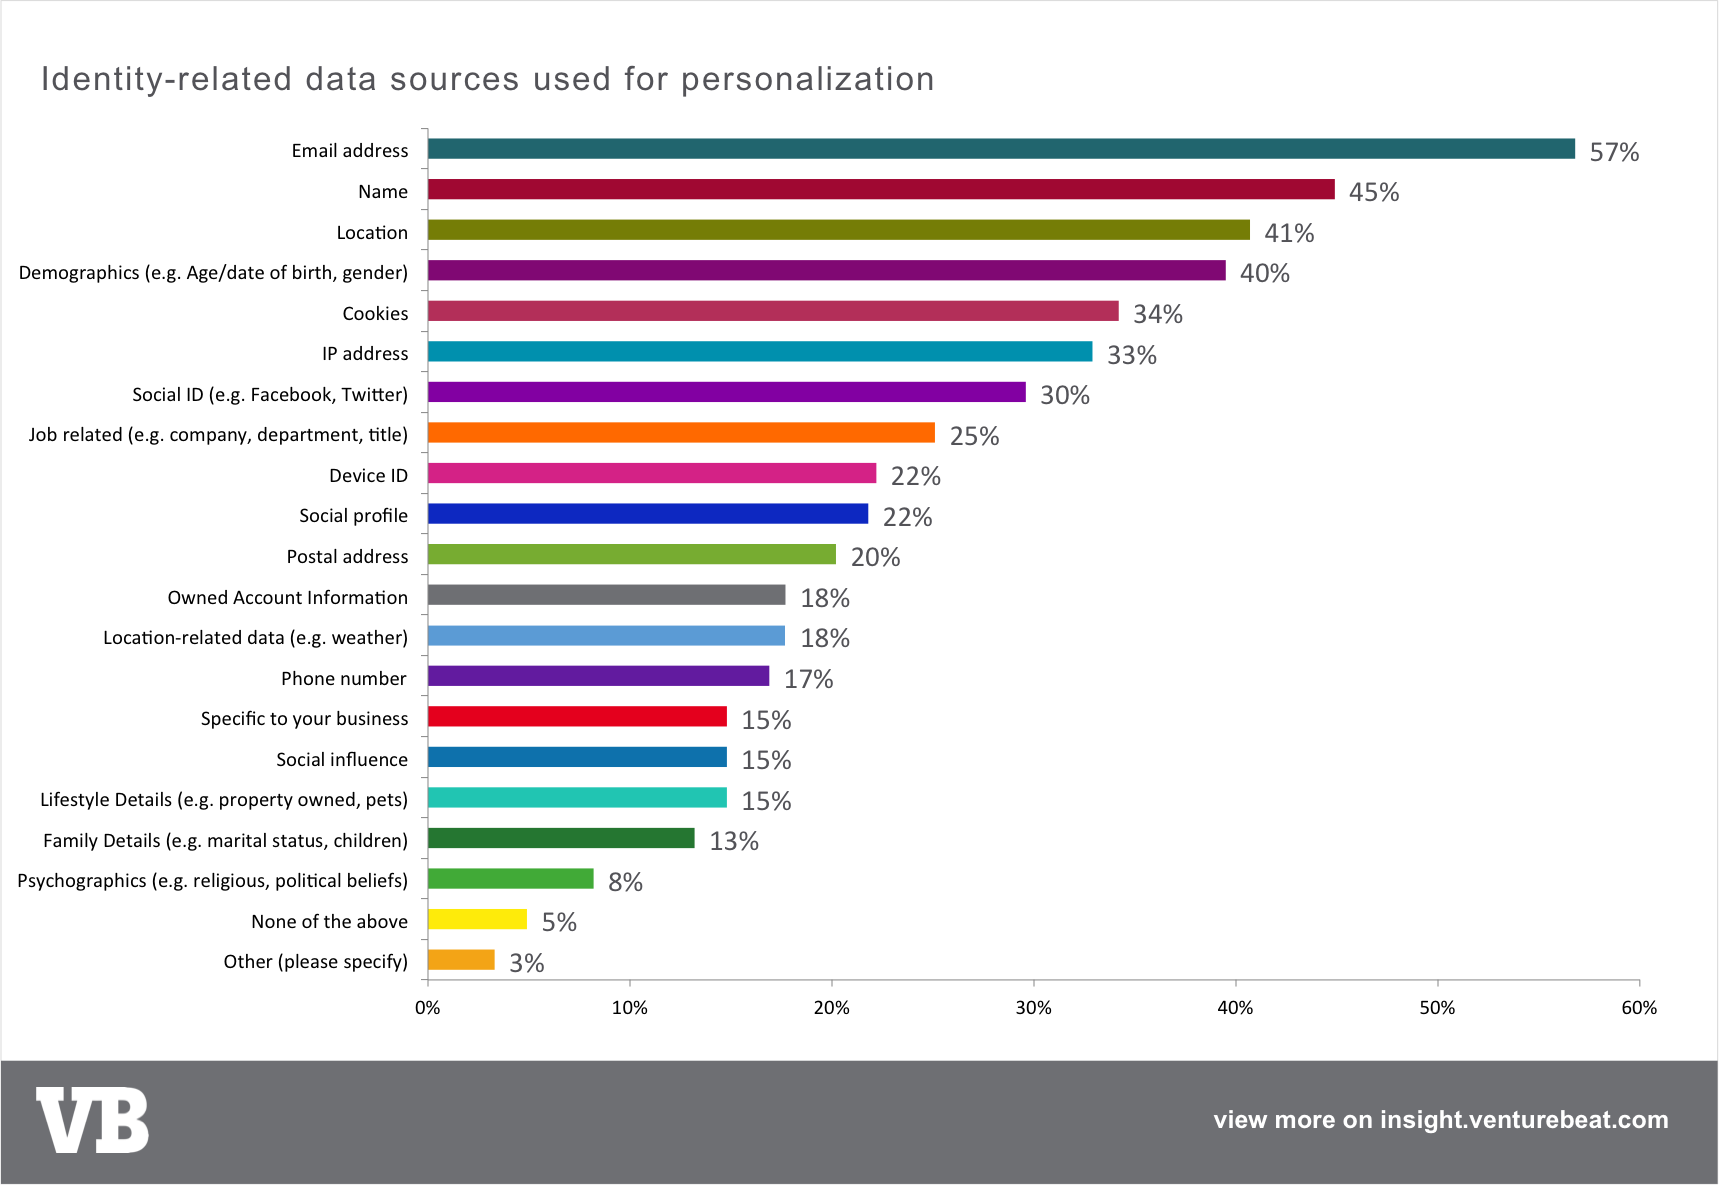 Popular data sources being used for personalization today